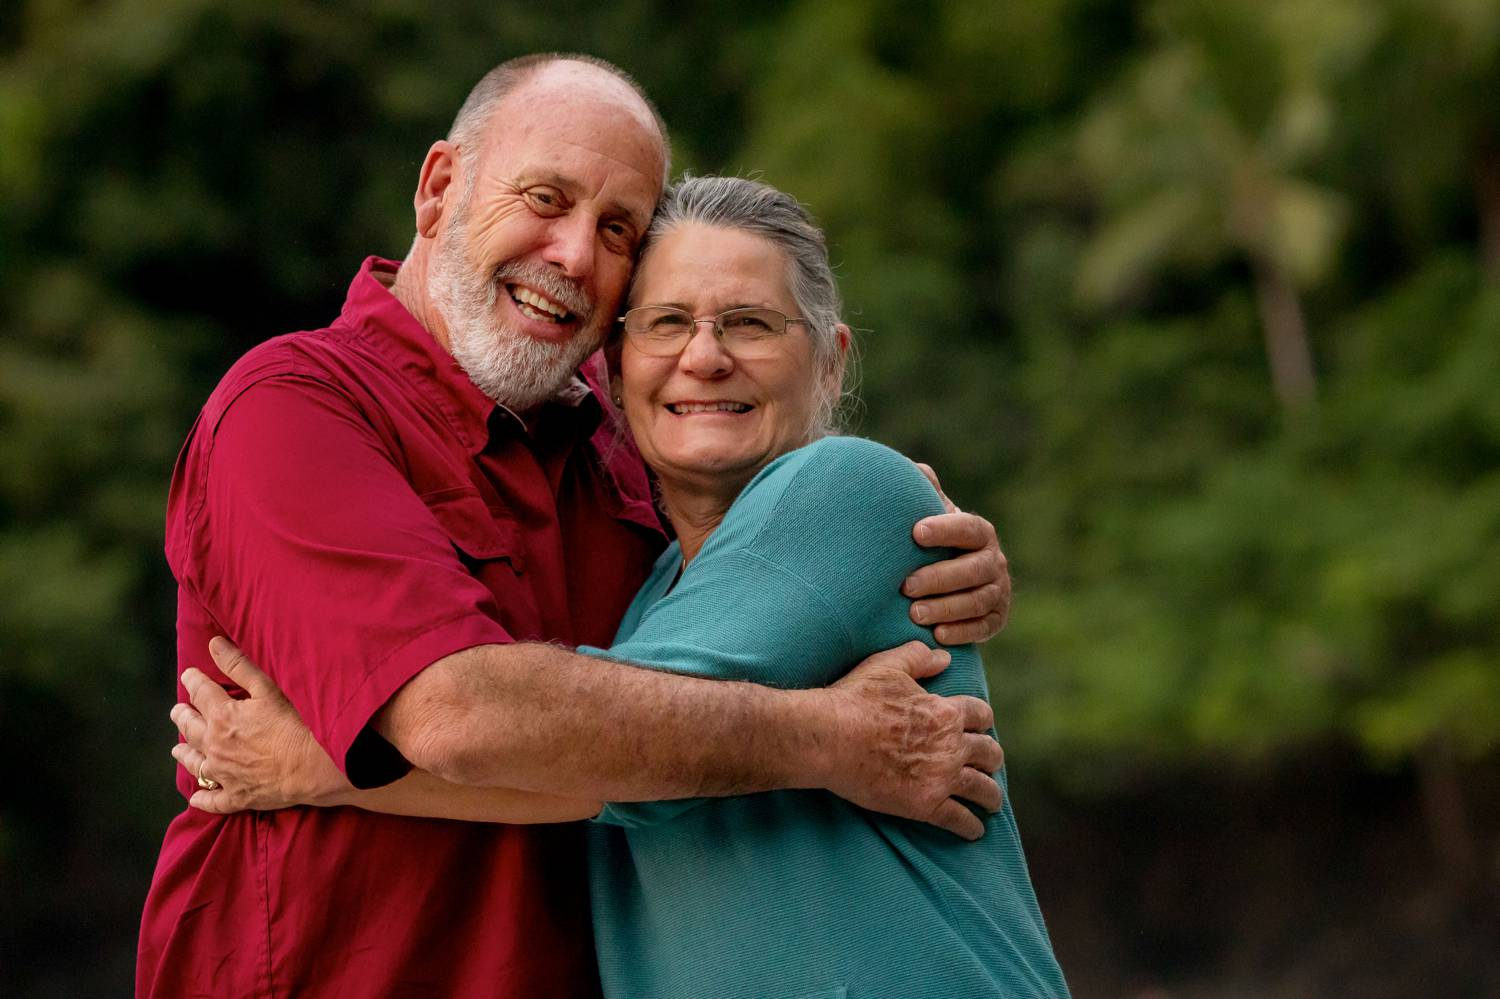 A photo by Kevin Heslin depicts a gray-bearded man with his arms wrapped around his silver-haired partner.